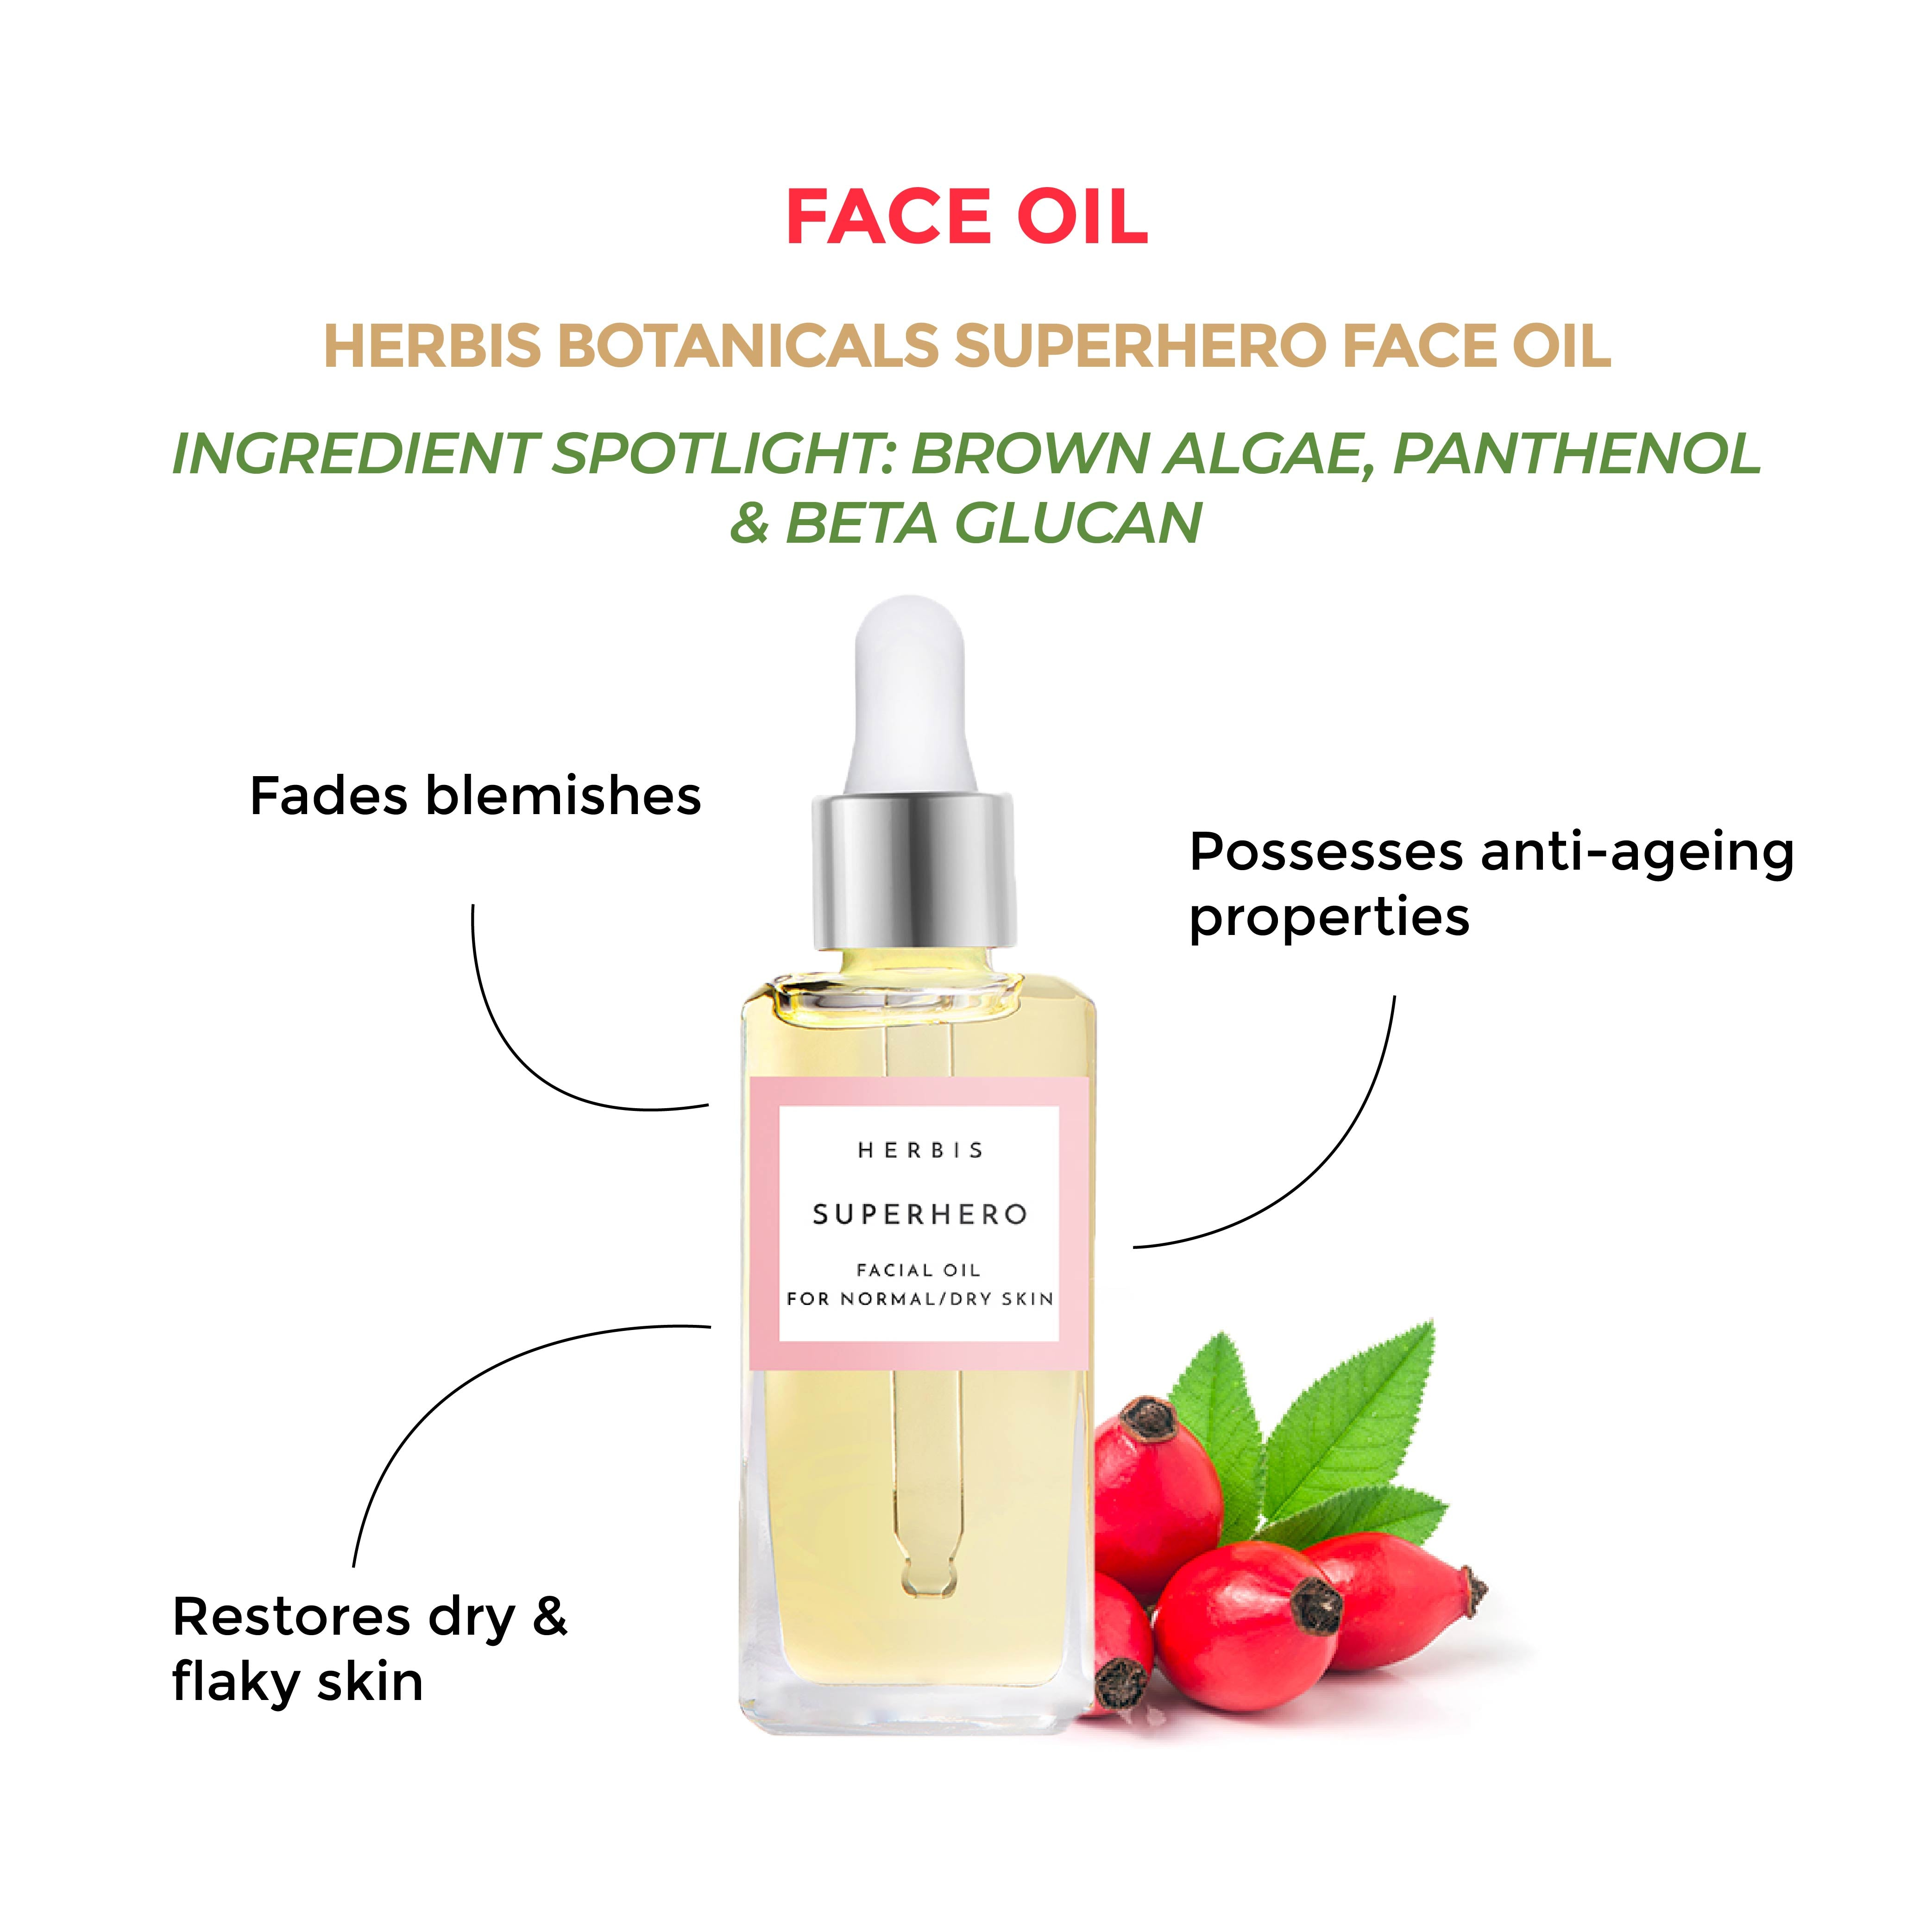 This is an image of the Herbis Botanicals Superhero Face Oil on www.sublimelife.in